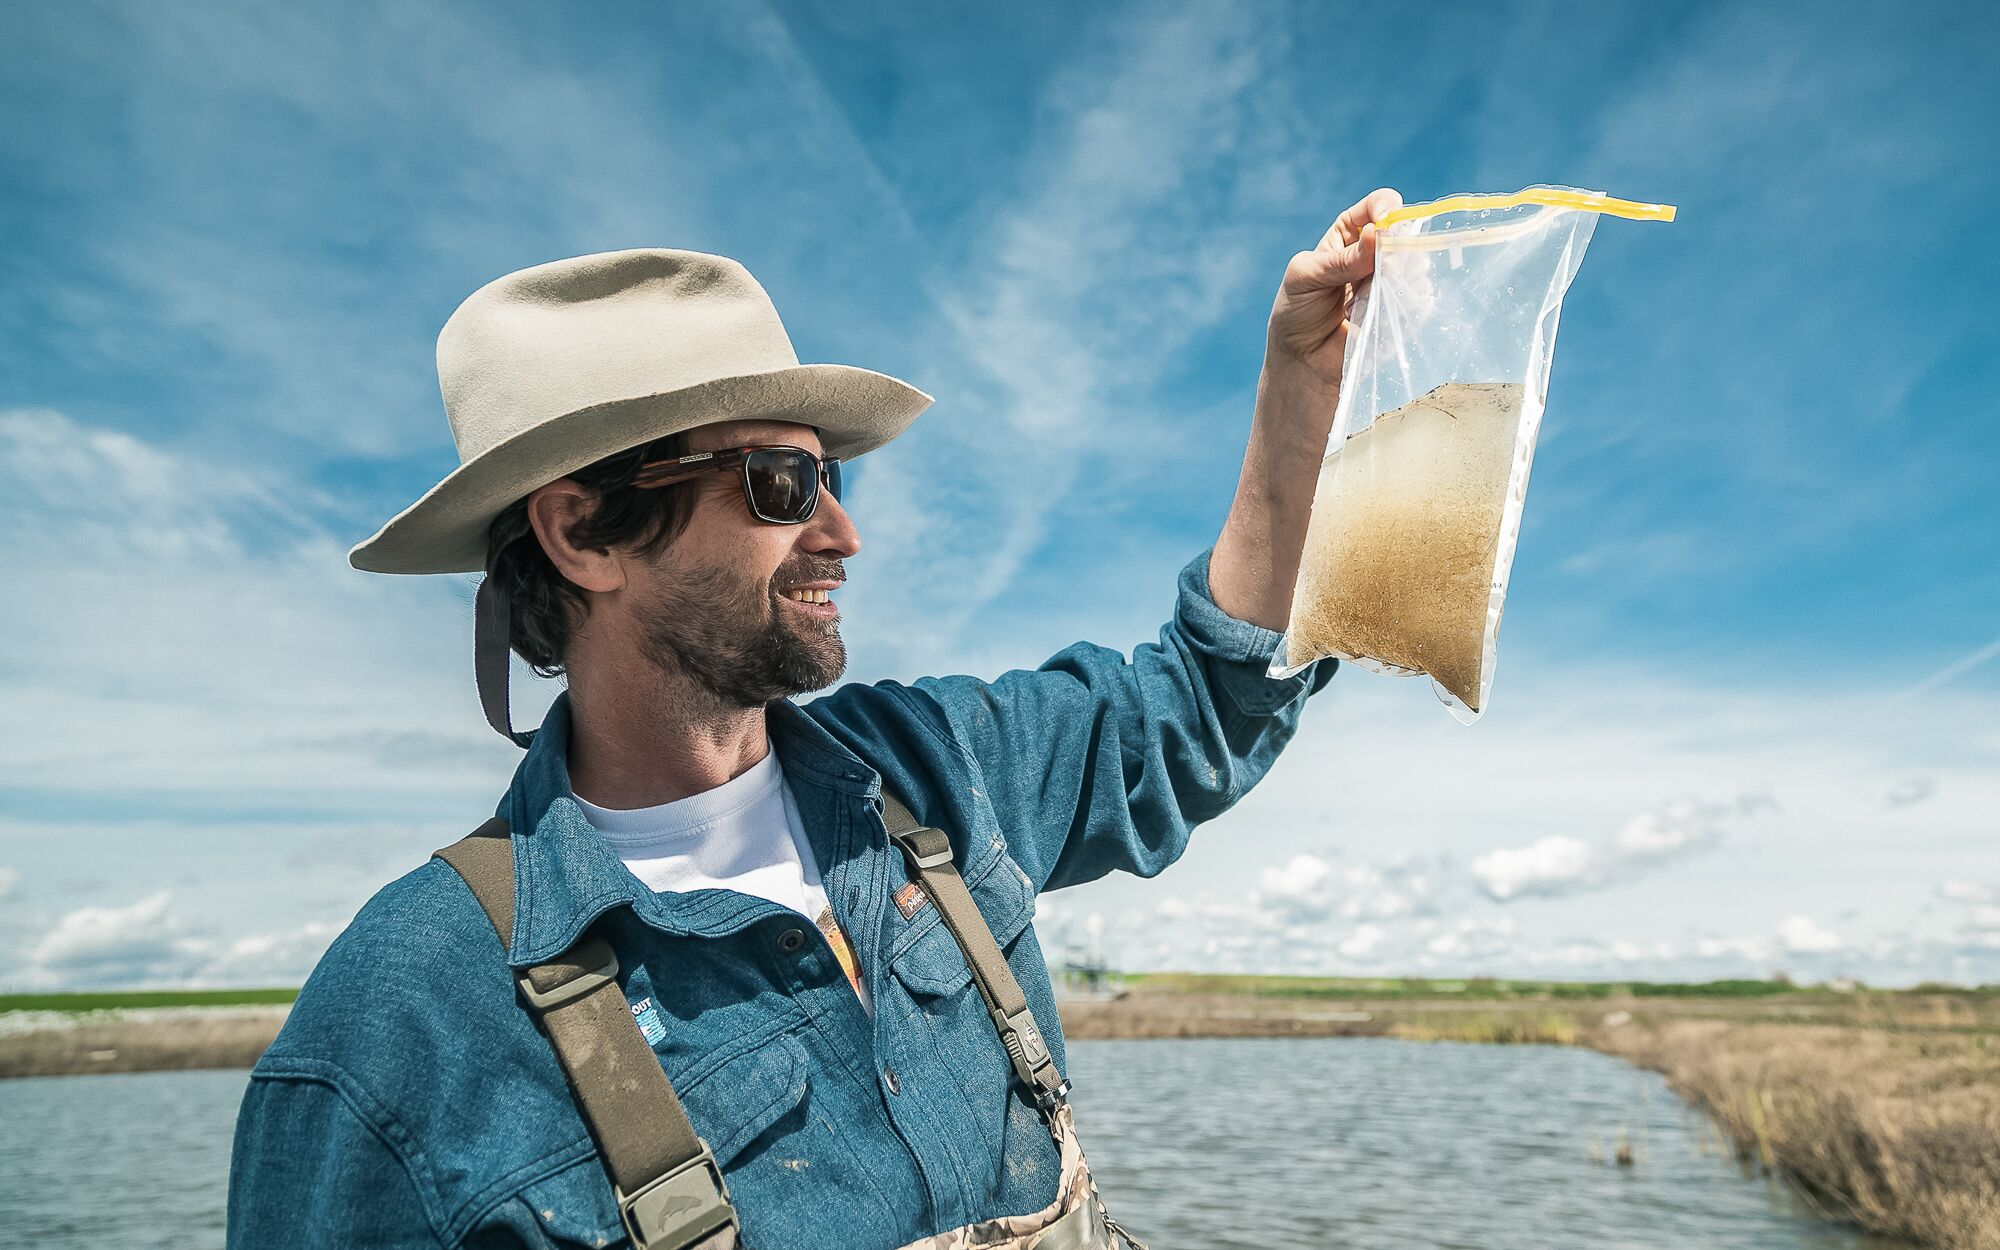 Jacob Katz examines a water sample full of zooplankton, pulled from a flooded rice field at Knaggs Ranch near the Sacramento River.